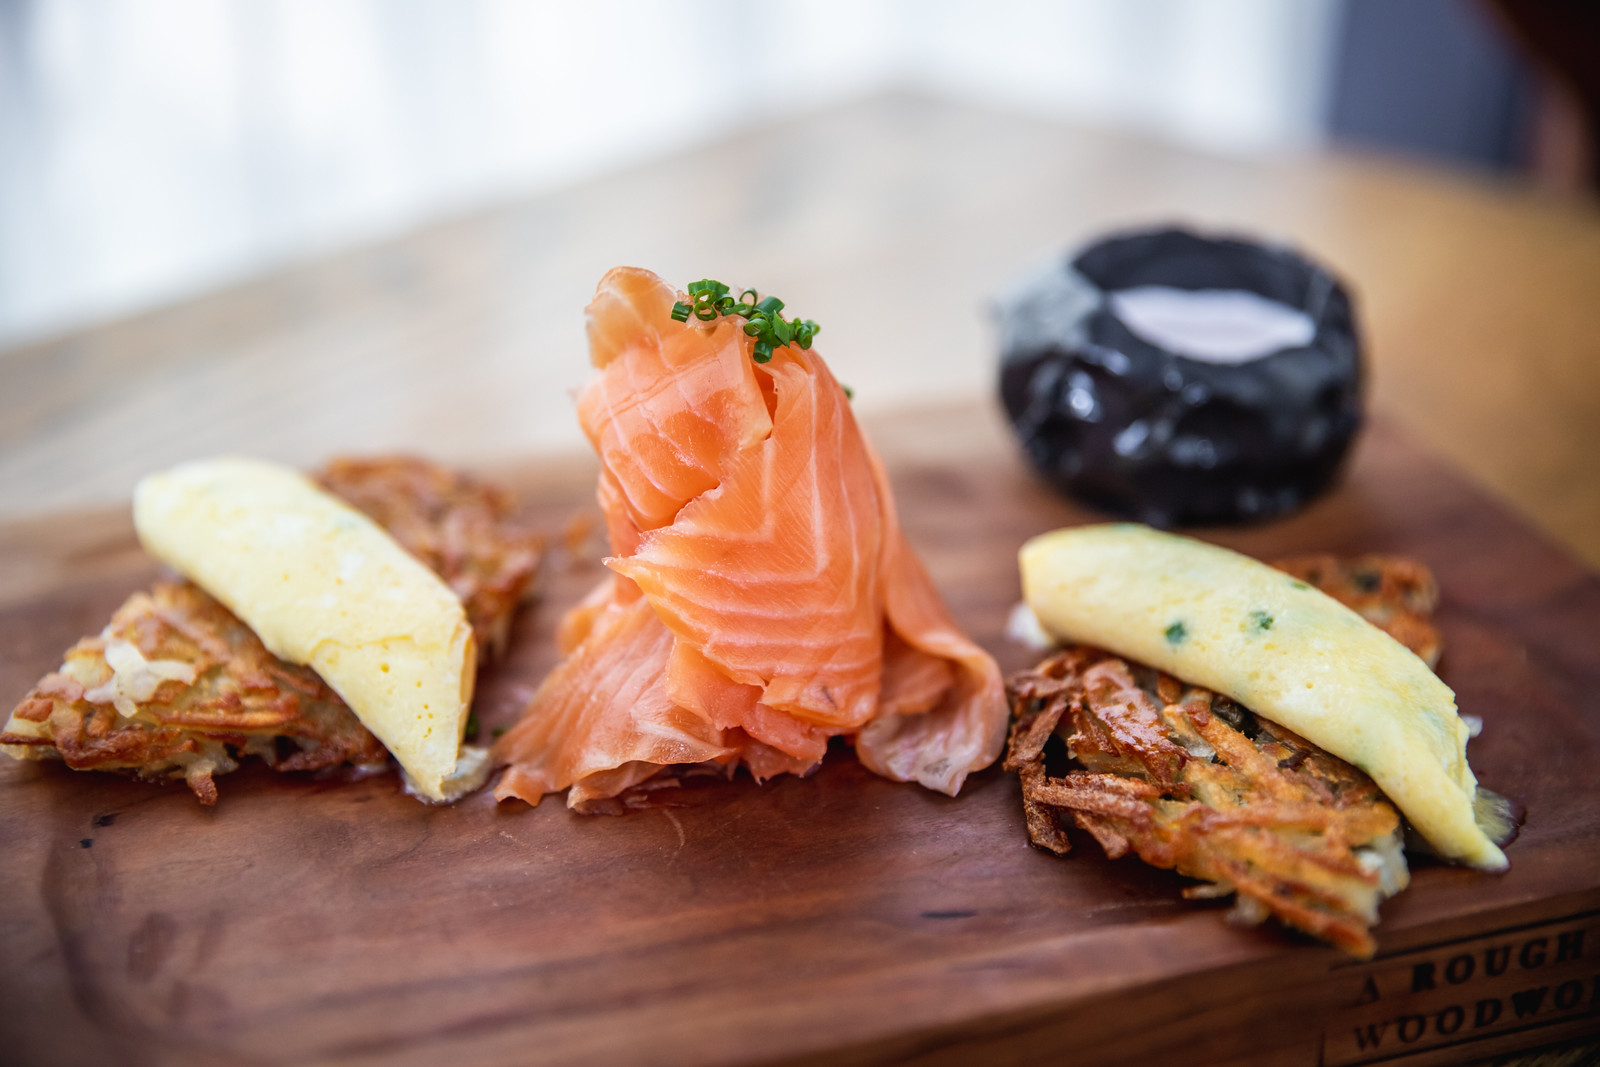 salmon, potato gateaux, and omelettes on a wooden board